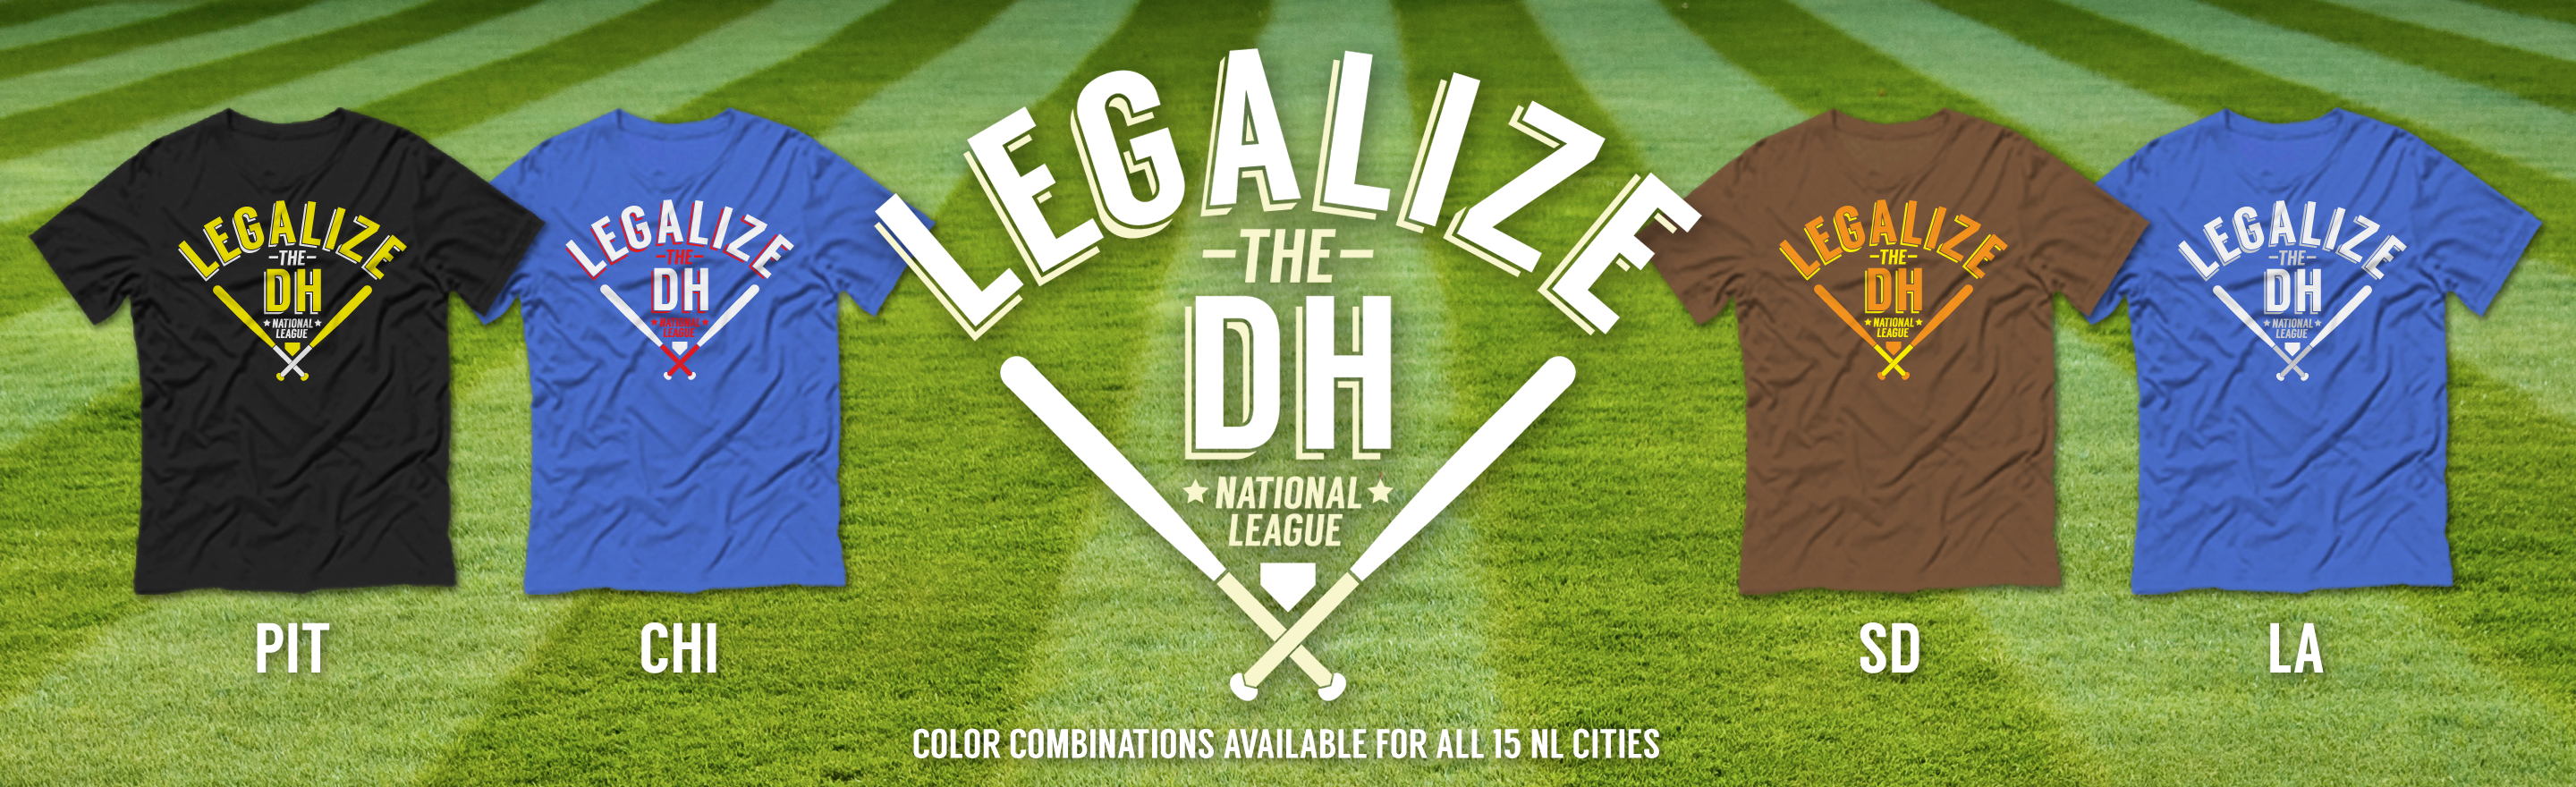 Legalize the DH